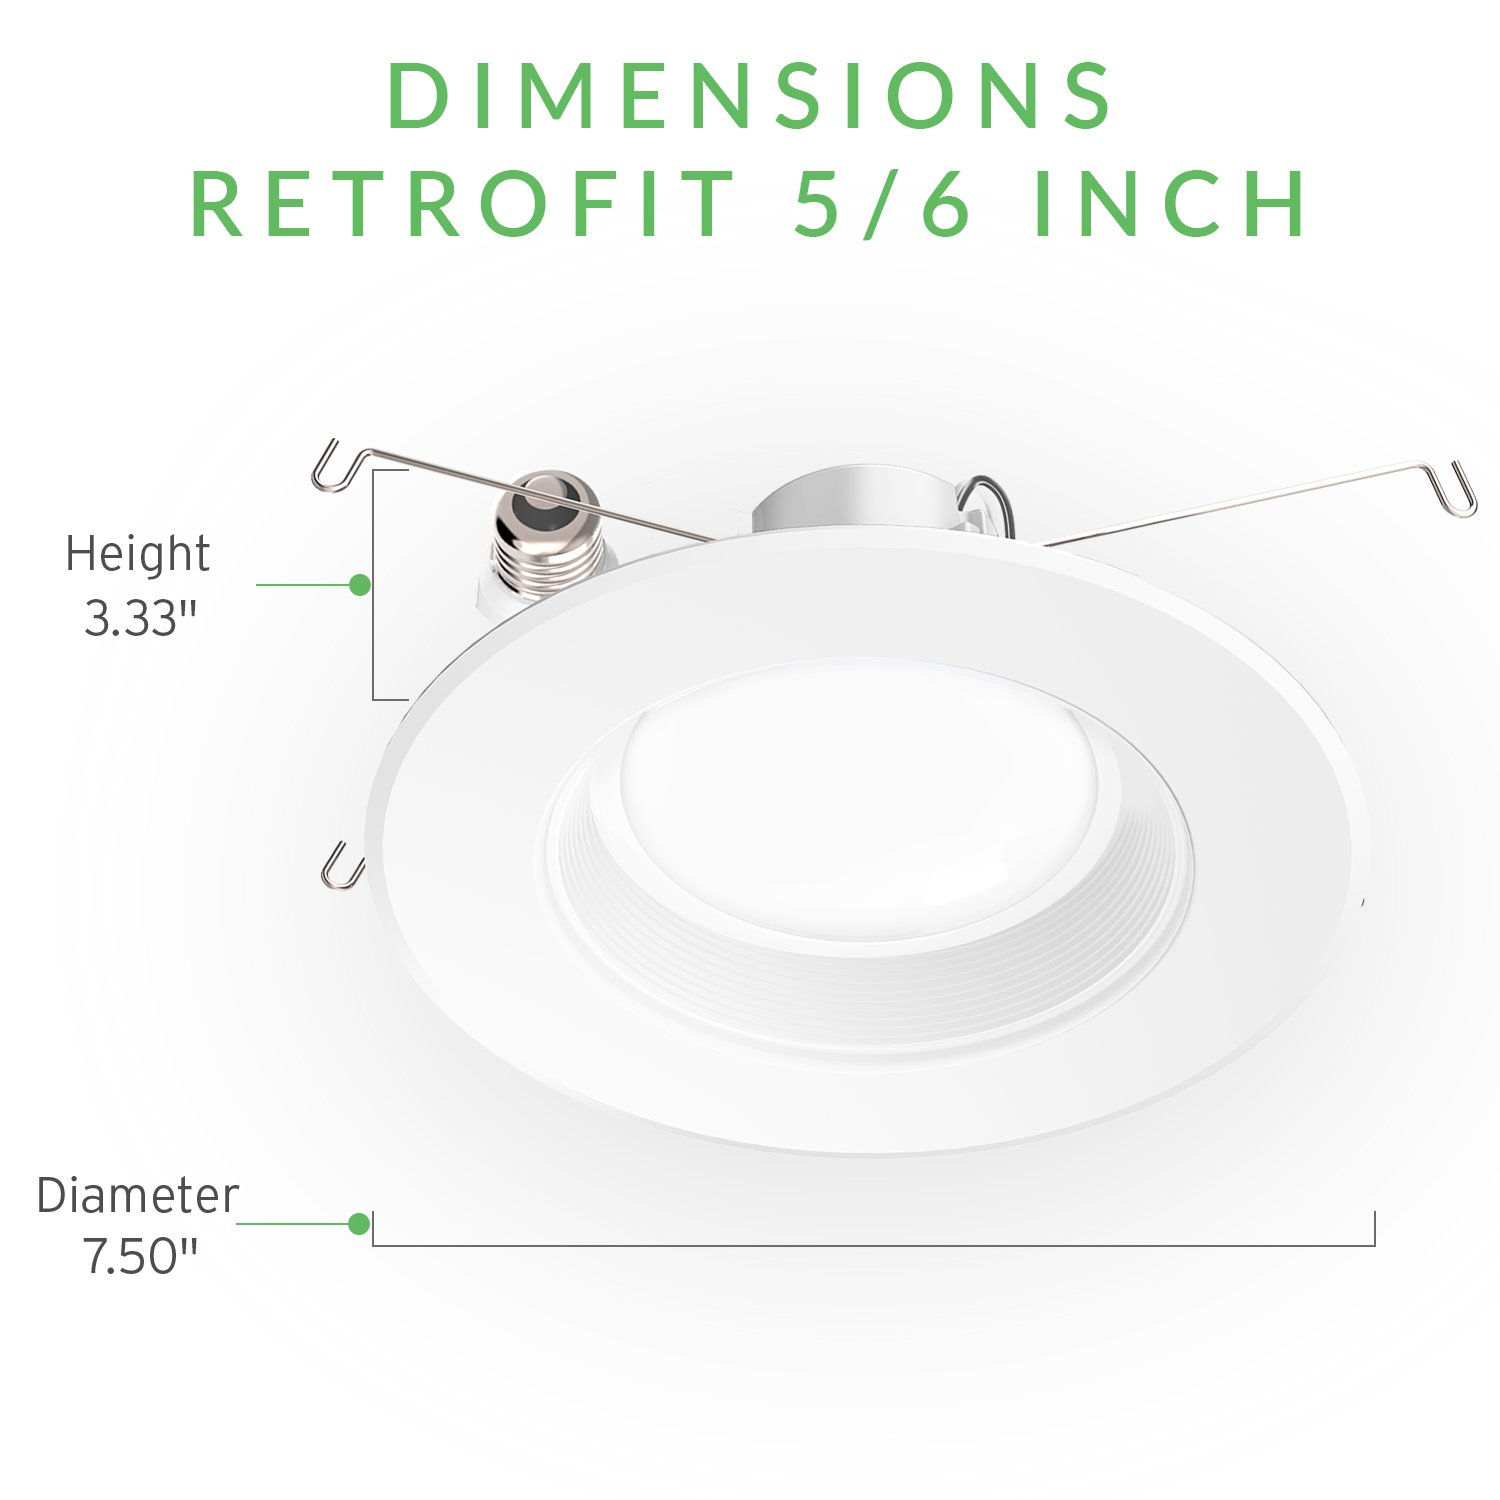 Sunco Lighting 12 PACK - 13W 5/6inch Dimmable LED Retrofit Recessed Lighting Fixture (=75W) 3000K Warm White Energy Star, UL, LED Ceiling Light - 965 Lumens Recessed LED Downlight